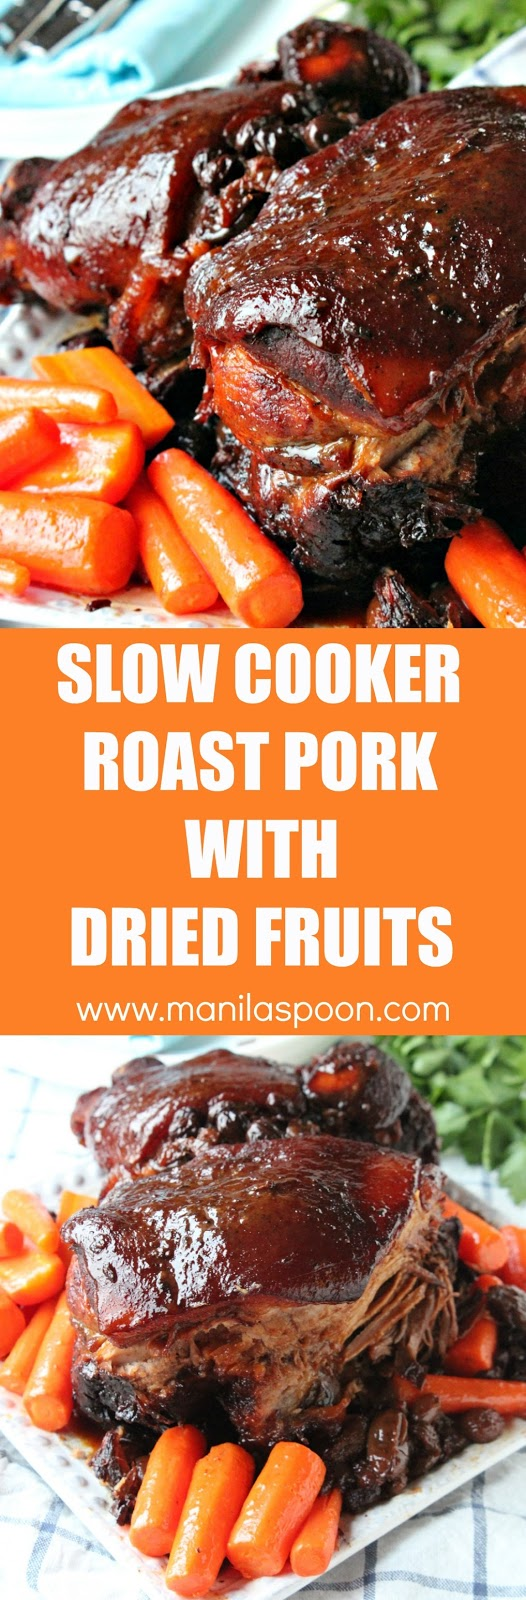 Melt-in-your-mouth, moist and delicious Slow Cooker Roast Pork with Dried Fruits that you'll make over and over again. Use a different variety of fruits - dried giant raisins, apricot, plums, cherries, etc. It's your choice. | manilaspoon.com